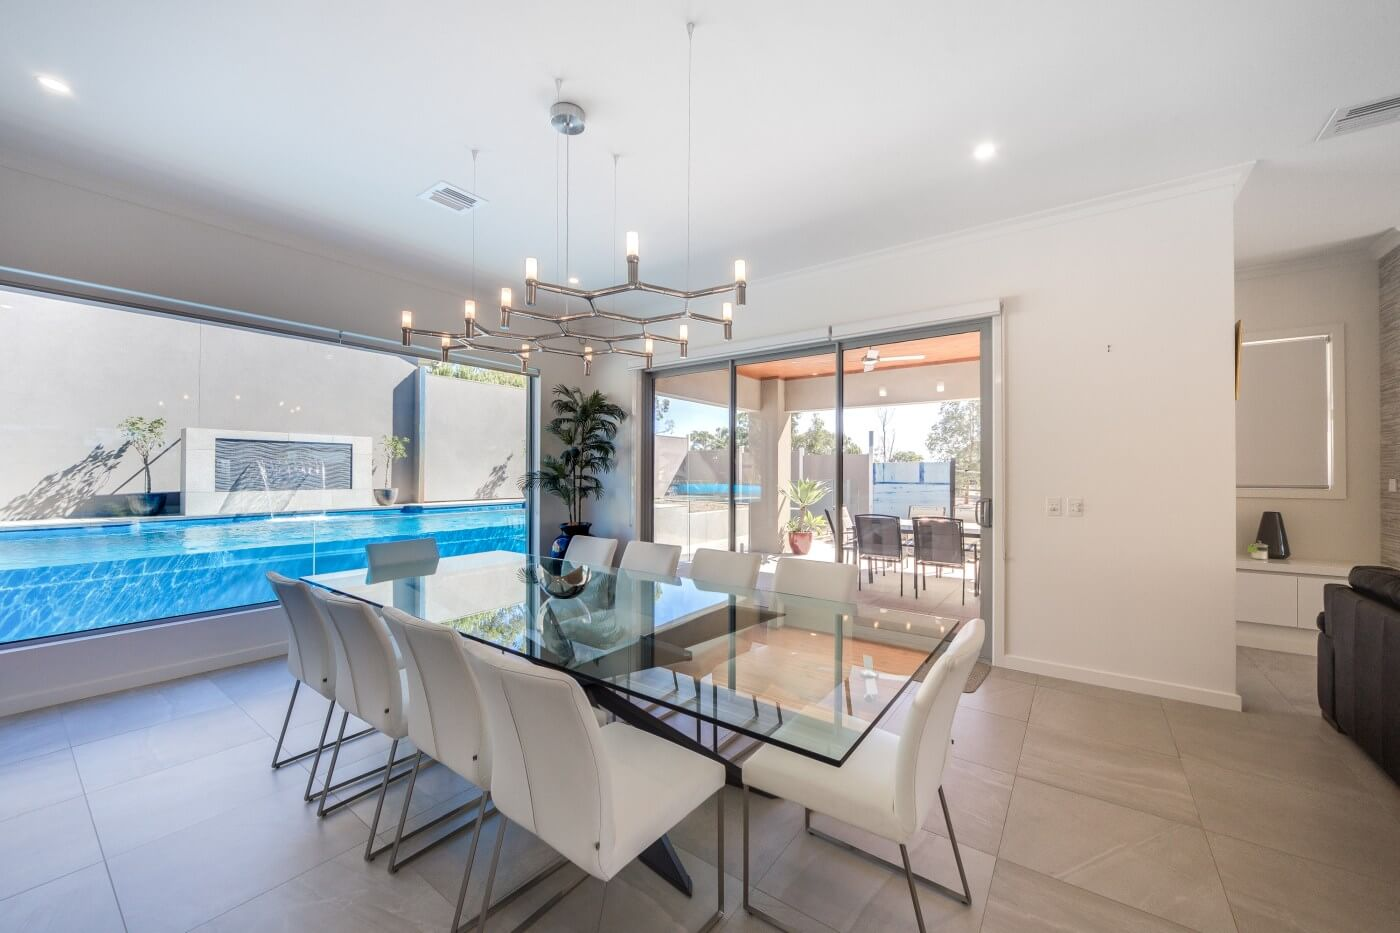 Vogue 8.2 SL self cleaning pool with glass window Pacific colour Bundoora VIC 6